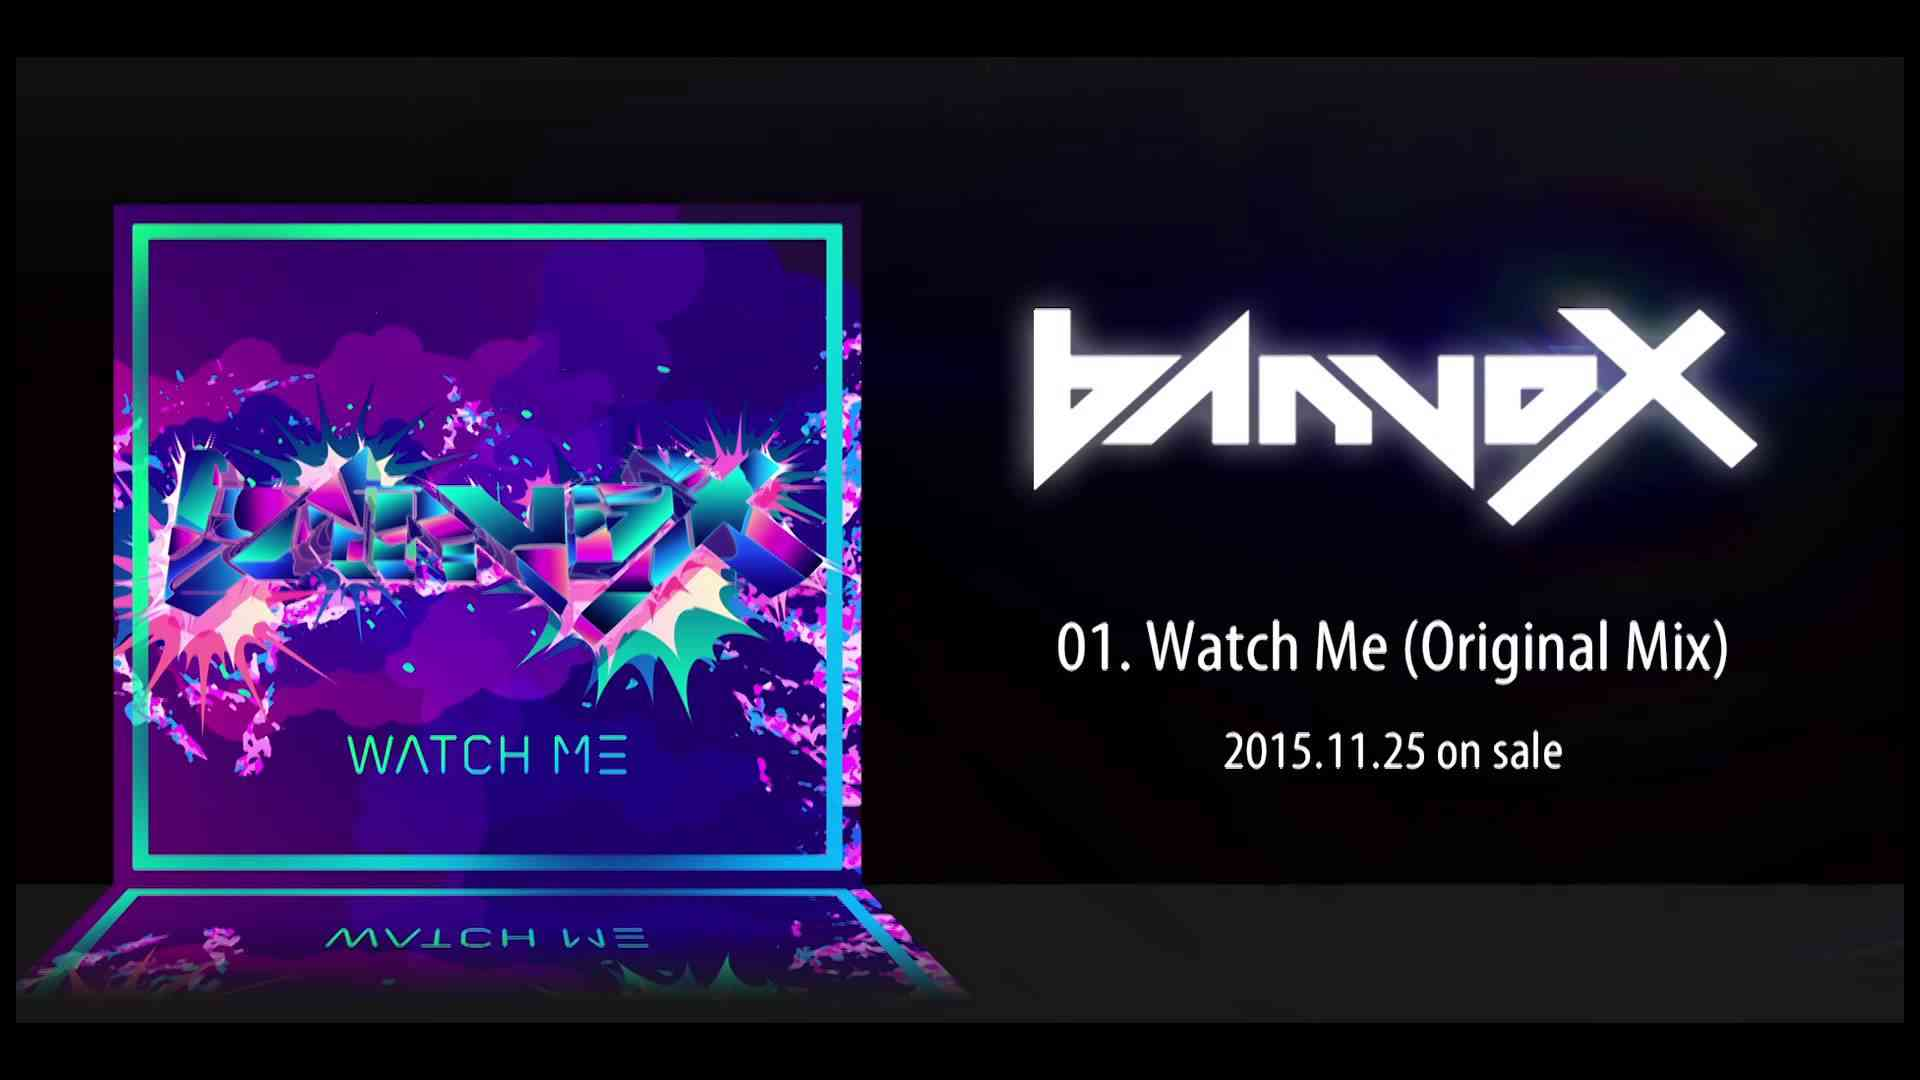 banvox - Watch Me (Audio) [Google Android TV Commercial Music] - YouTube